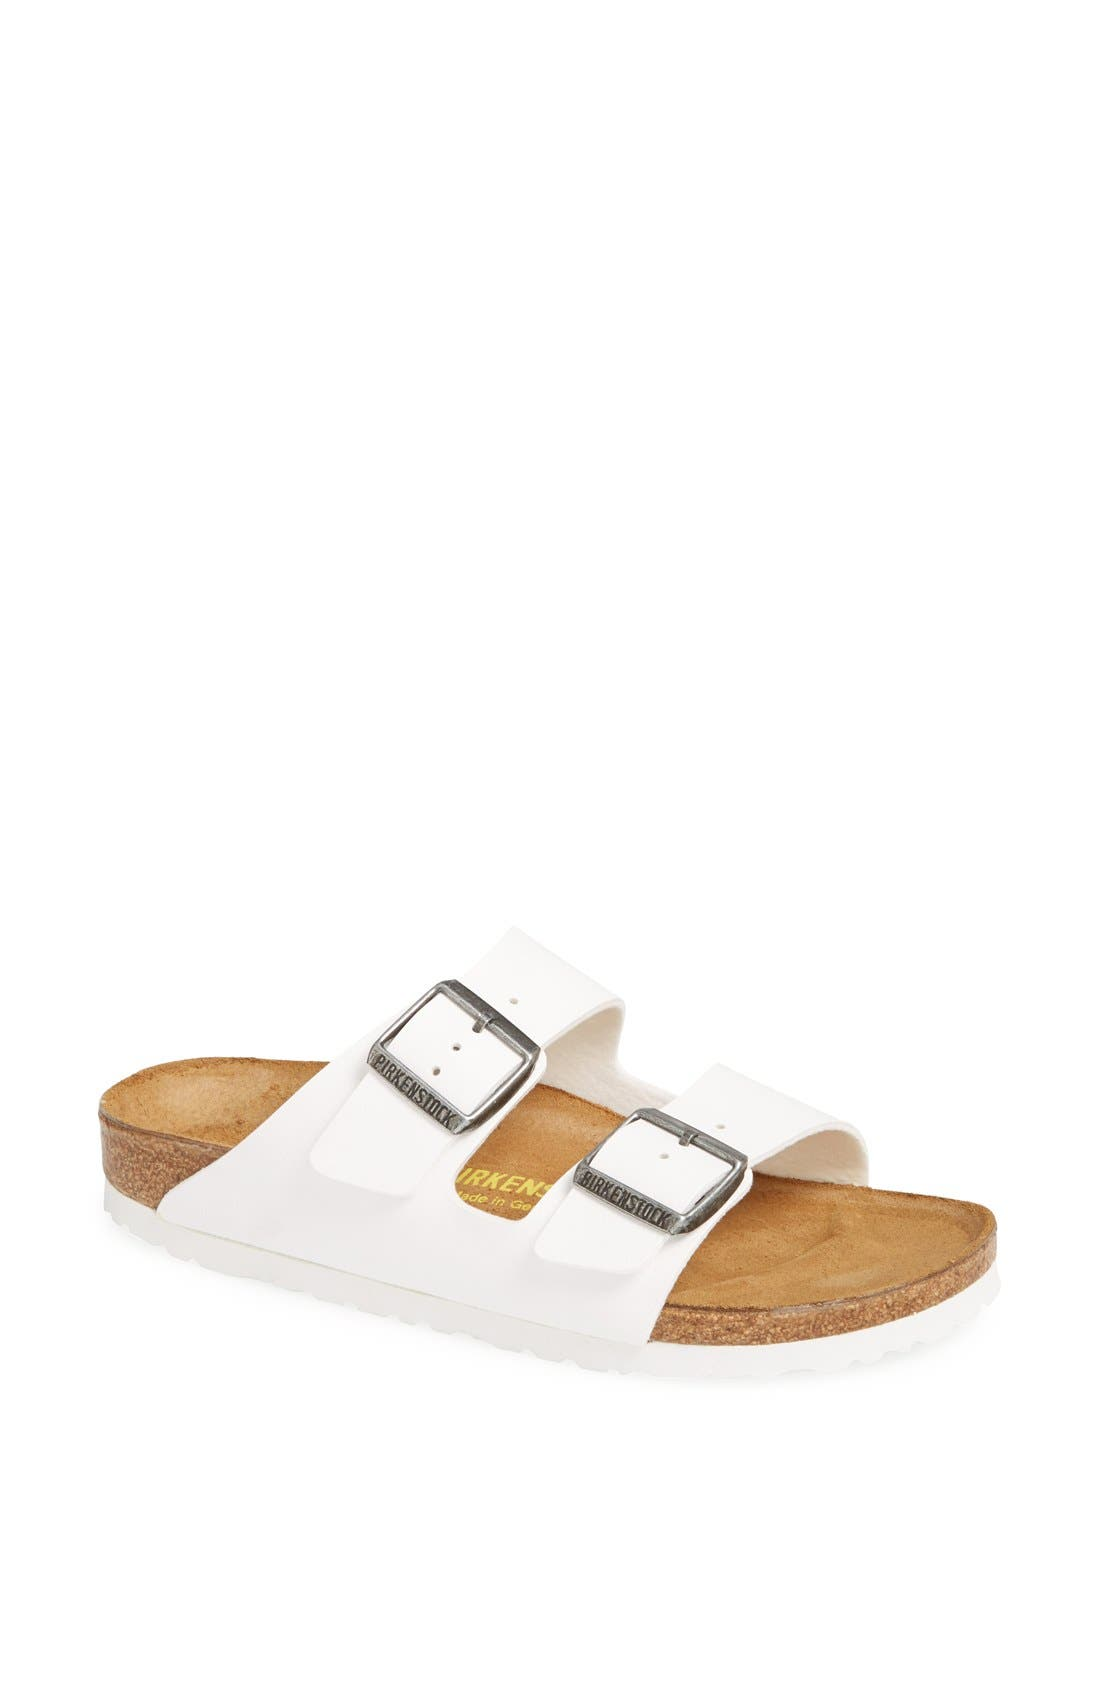 Alternate Image 1 Selected - Birkenstock 'Arizona' White Birko-Flor Sandal (Women)